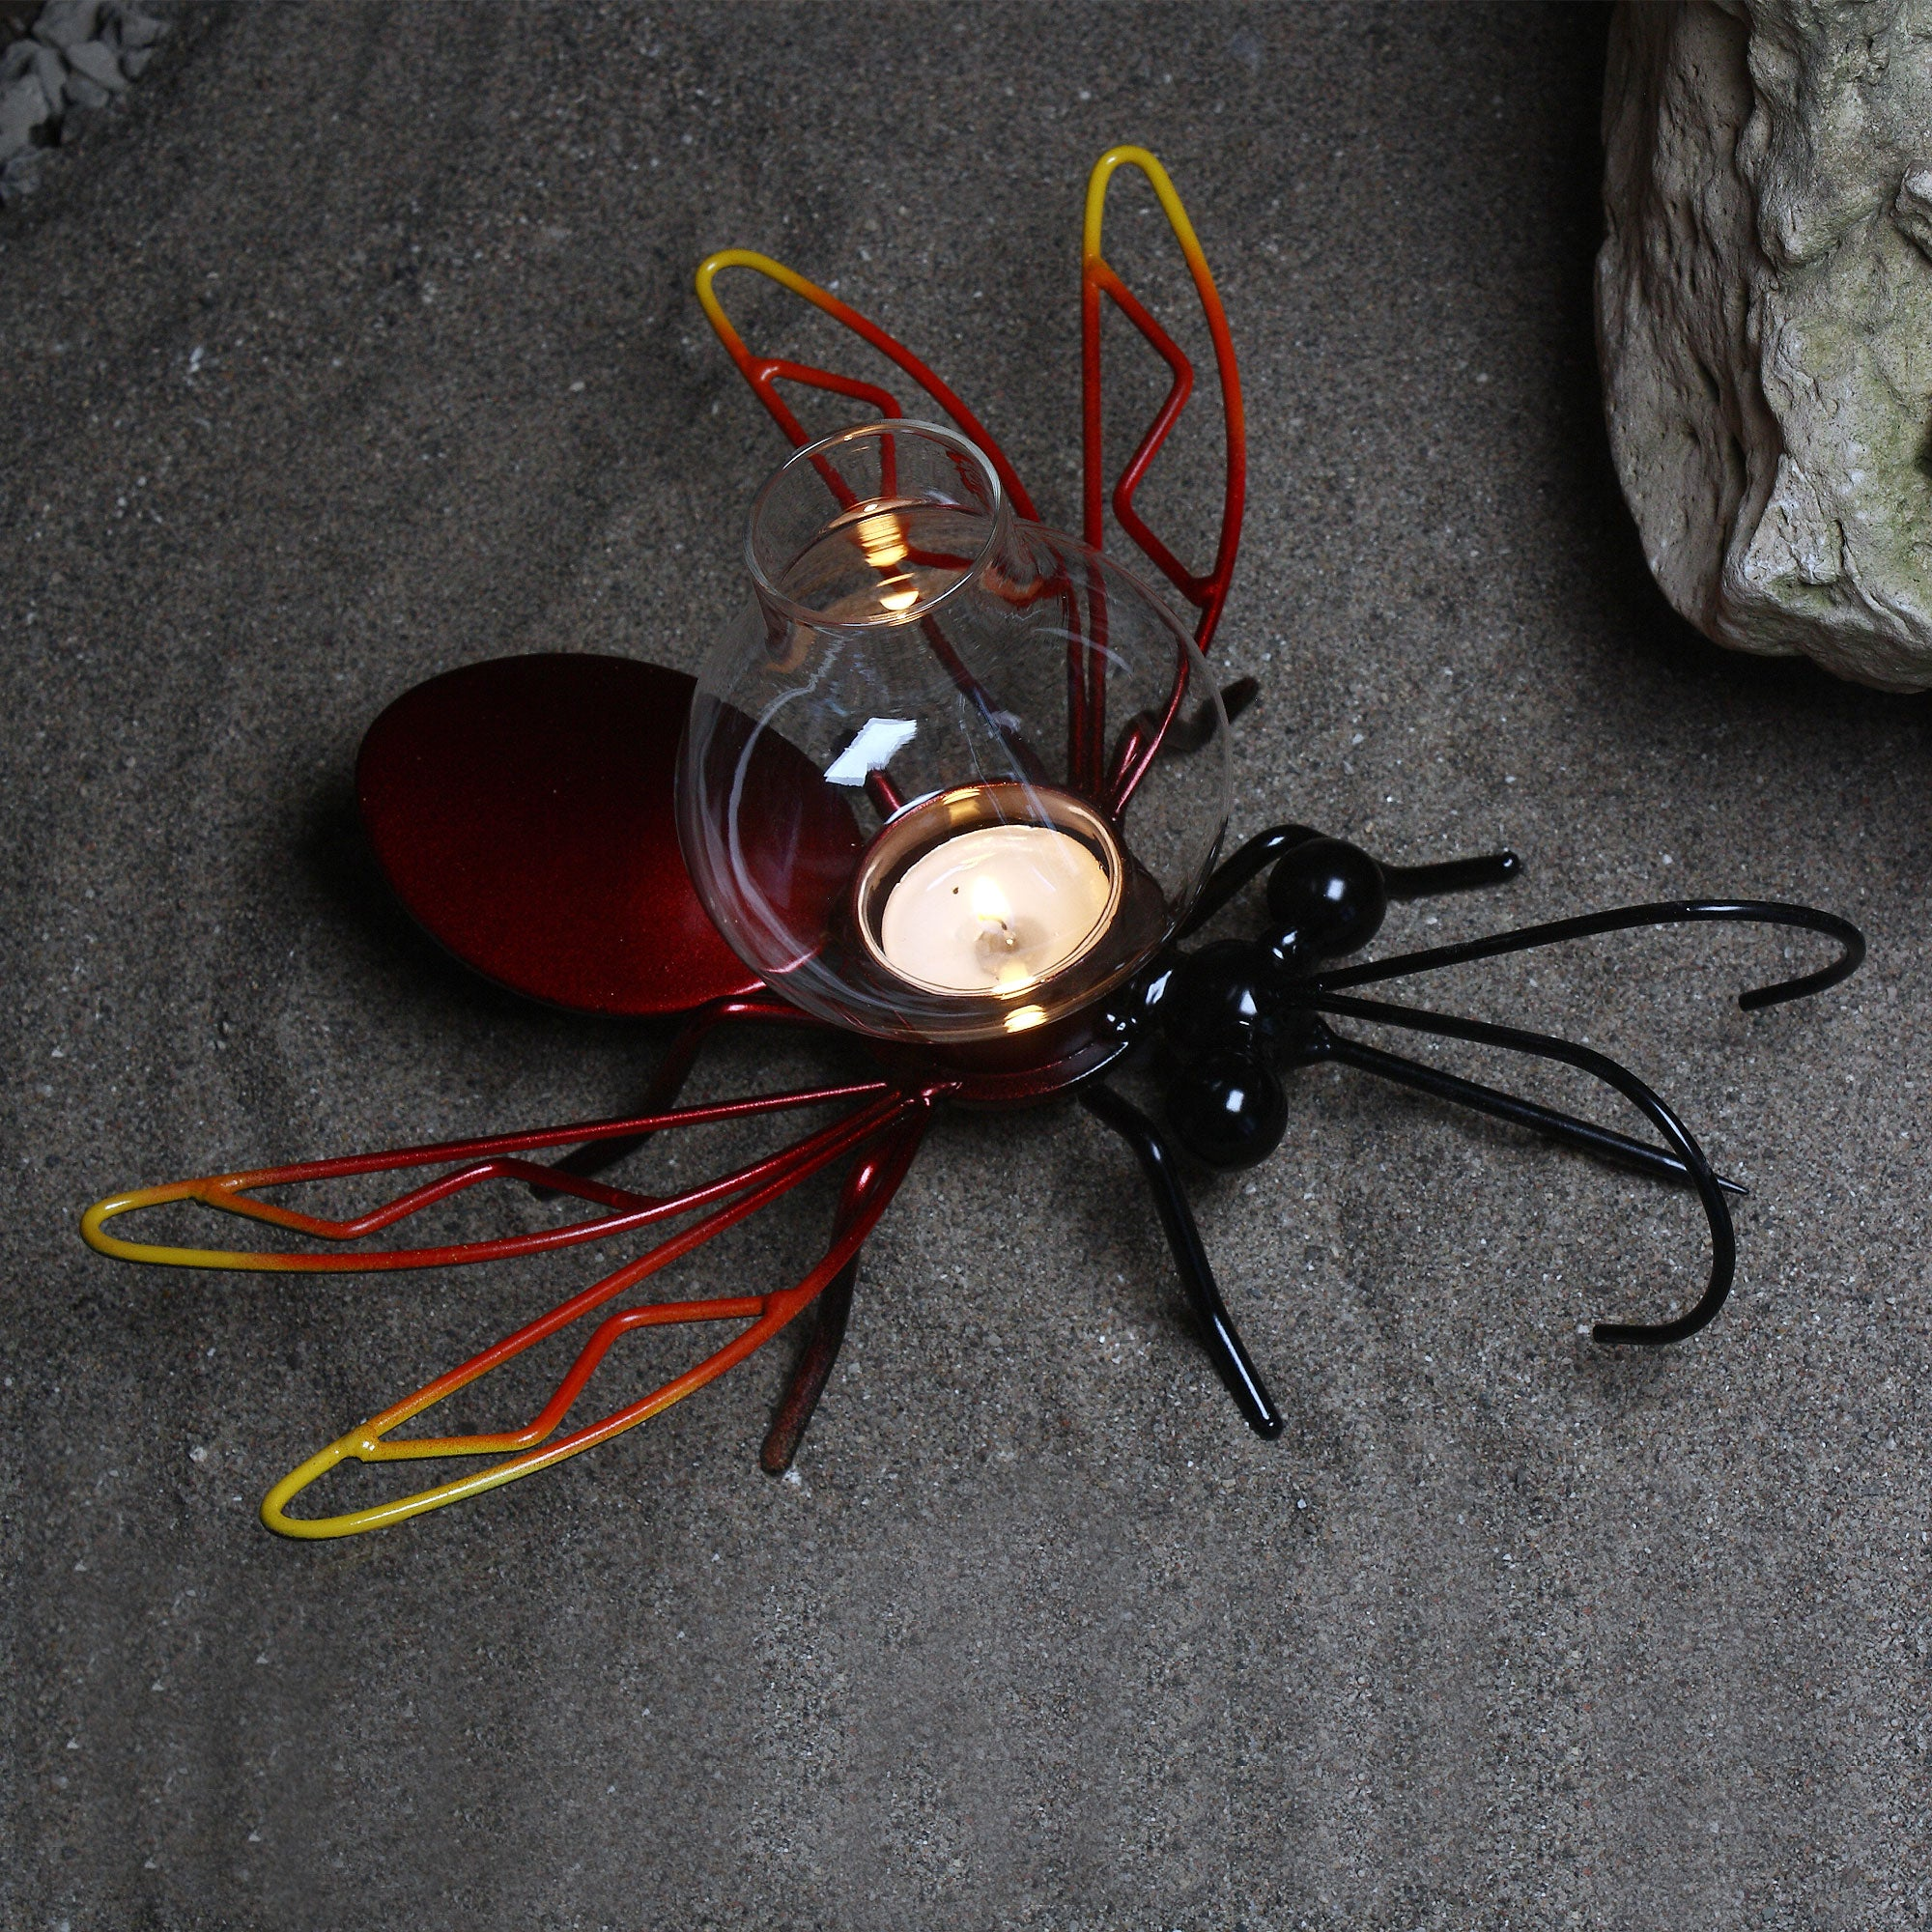 Mosquito Eliminator! Metal Art Mosquito Candle holder Garden Decoration Yard Art